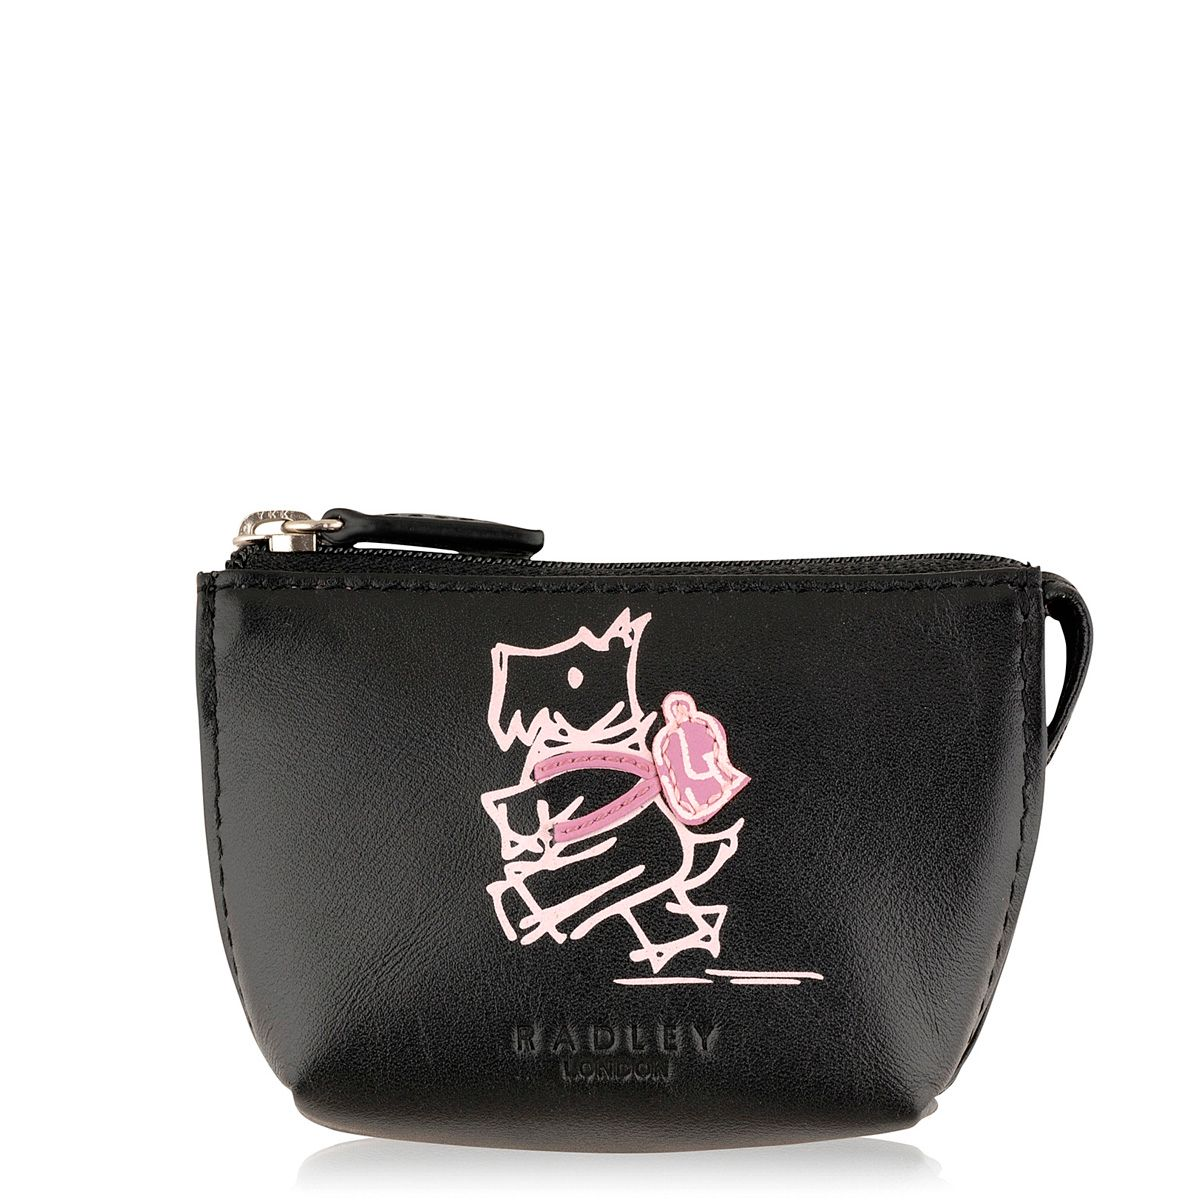 Walk the walk black coin purse